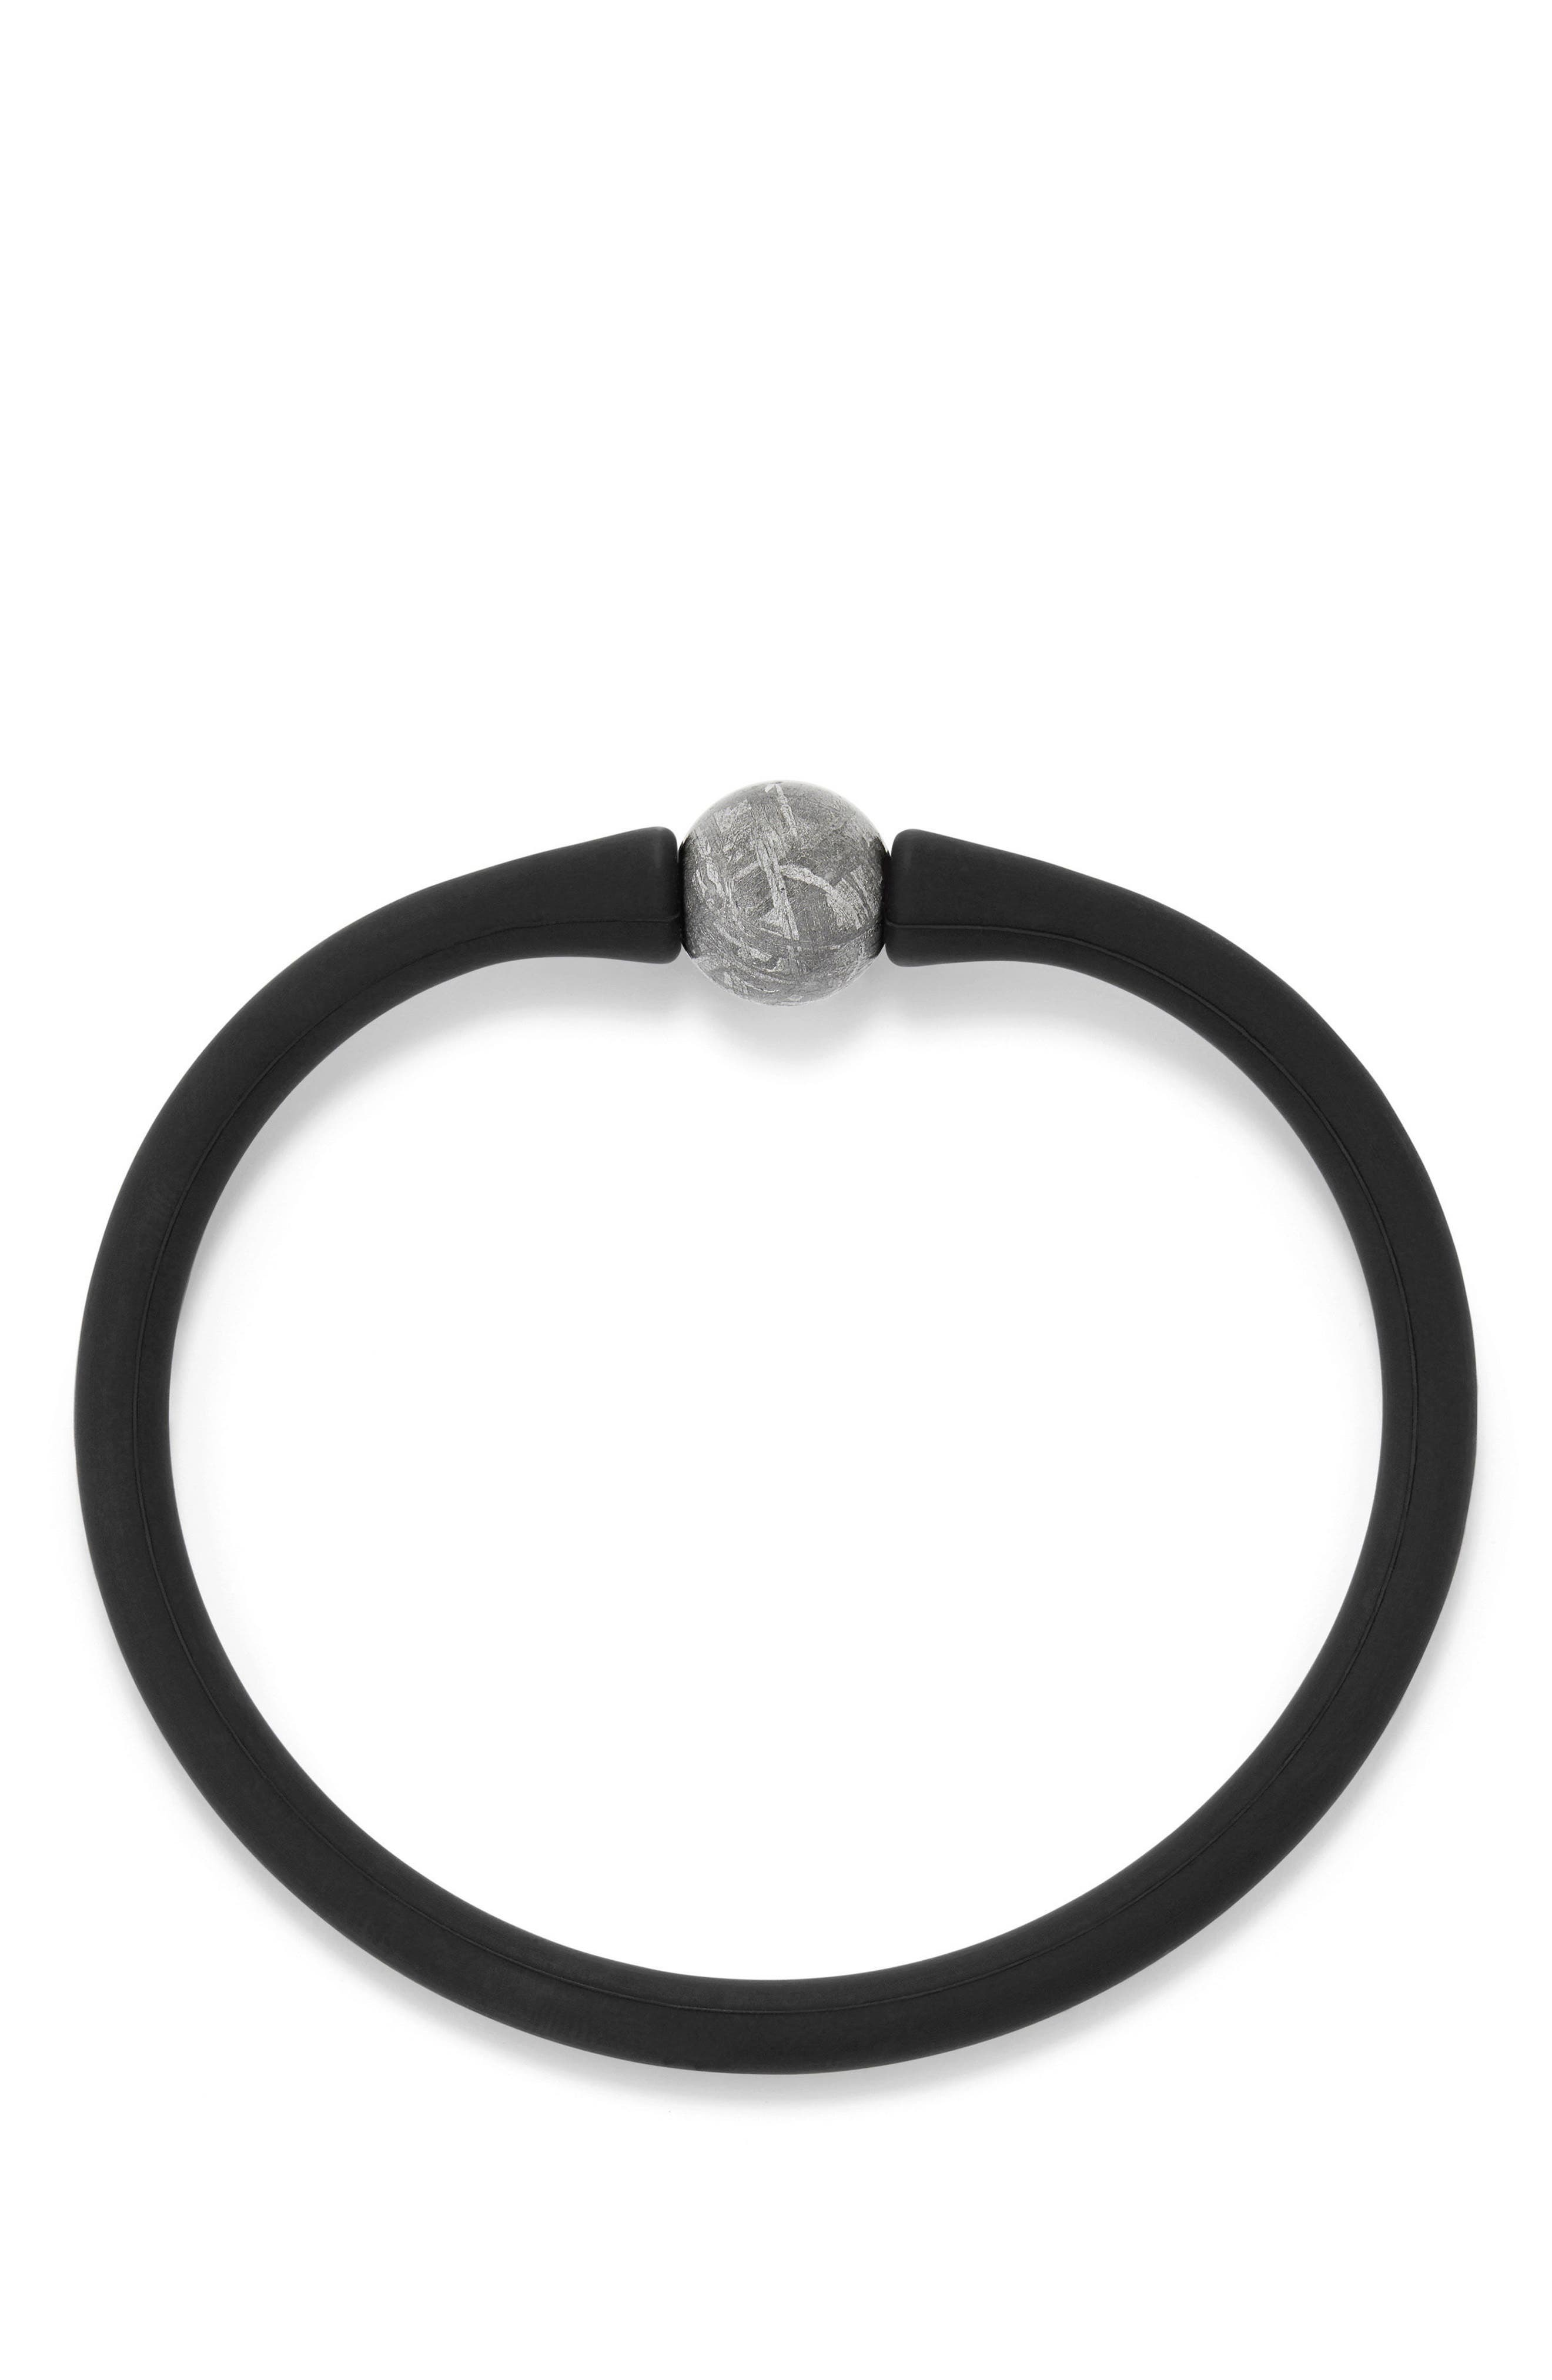 DAVID YURMAN, Spiritual Beads Stone Rubber Bead Bracelet, Alternate thumbnail 2, color, METEORITE